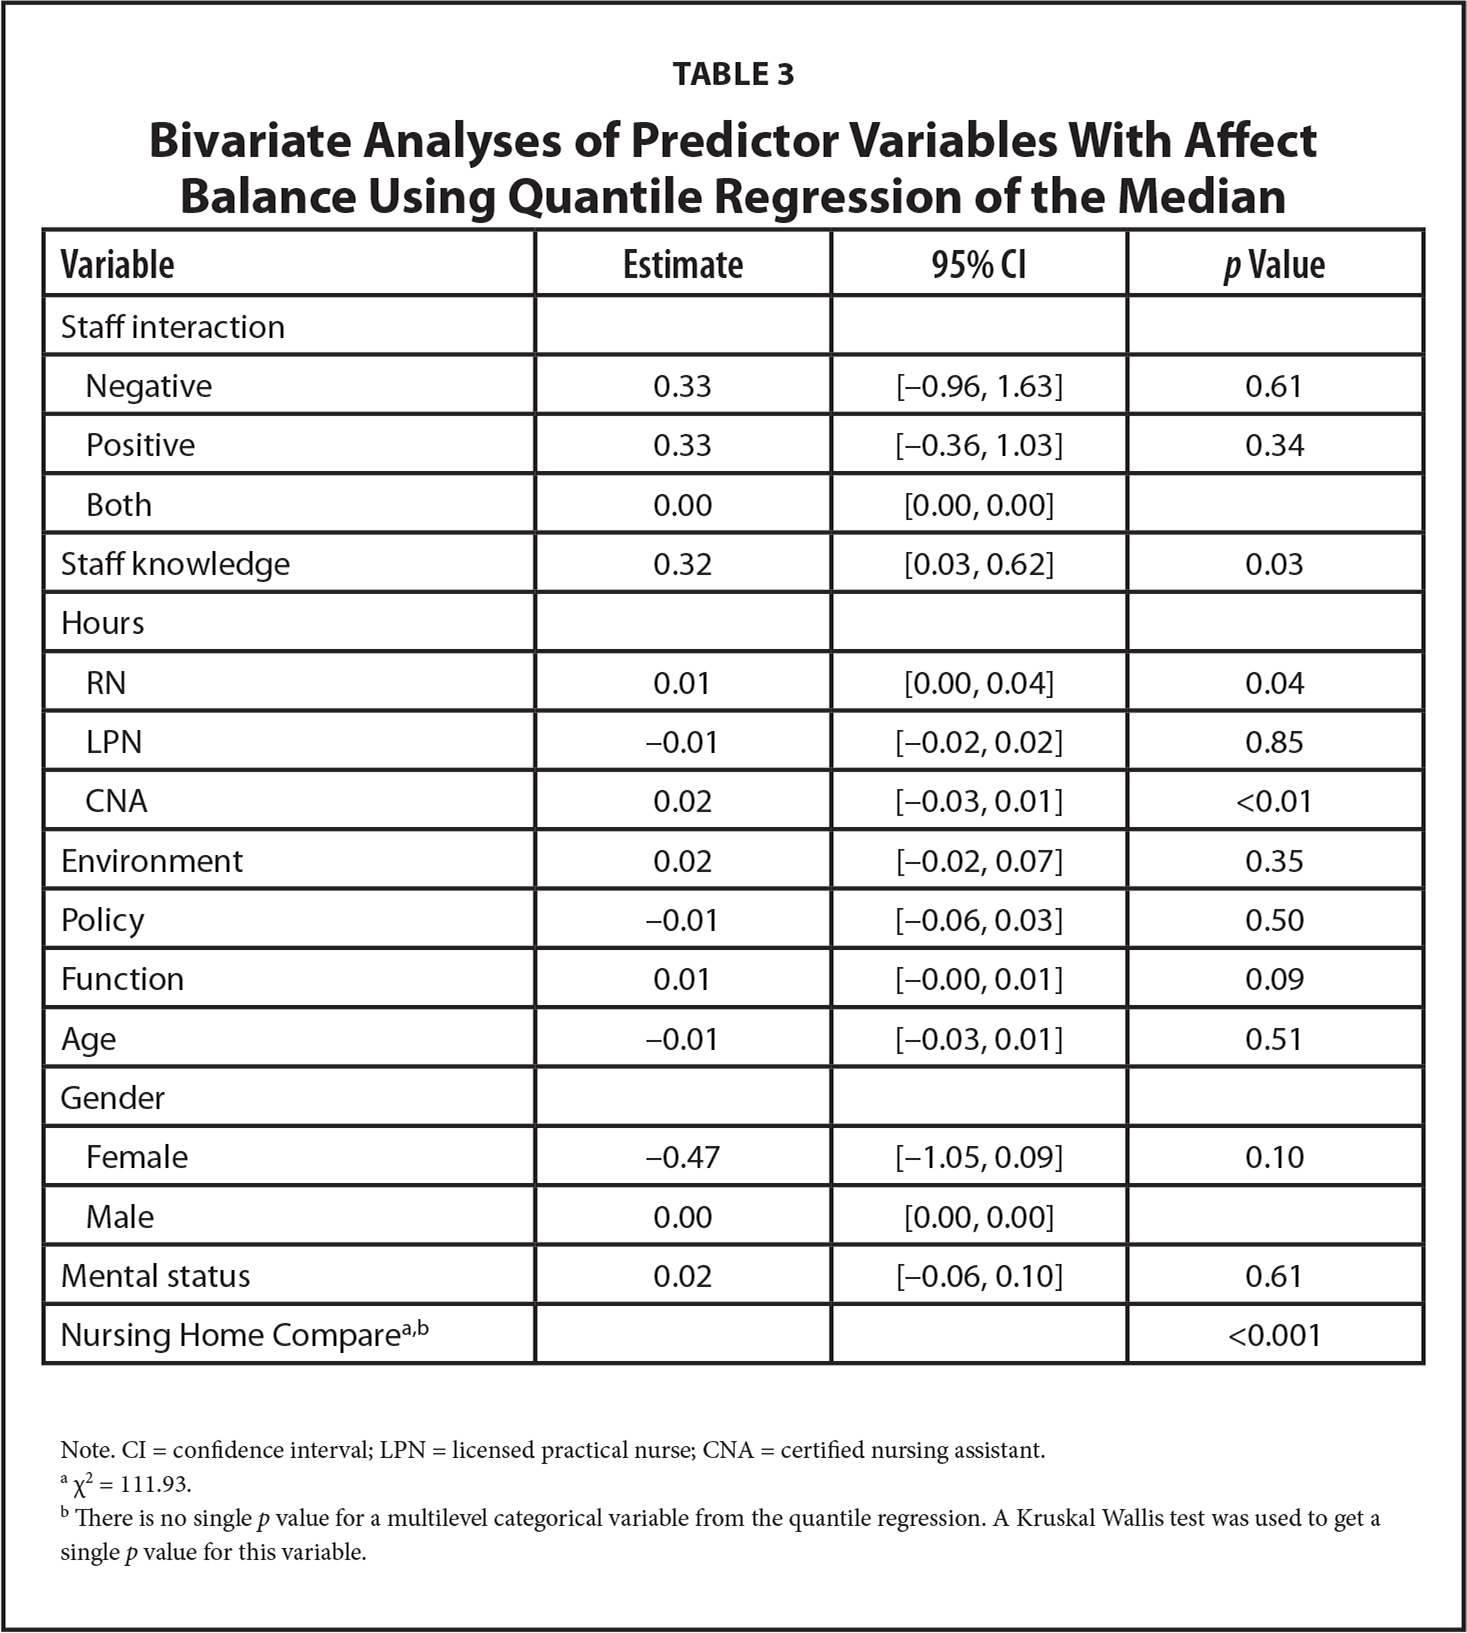 Bivariate Analyses of Predictor Variables With Affect Balance Using Quantile Regression of the Median